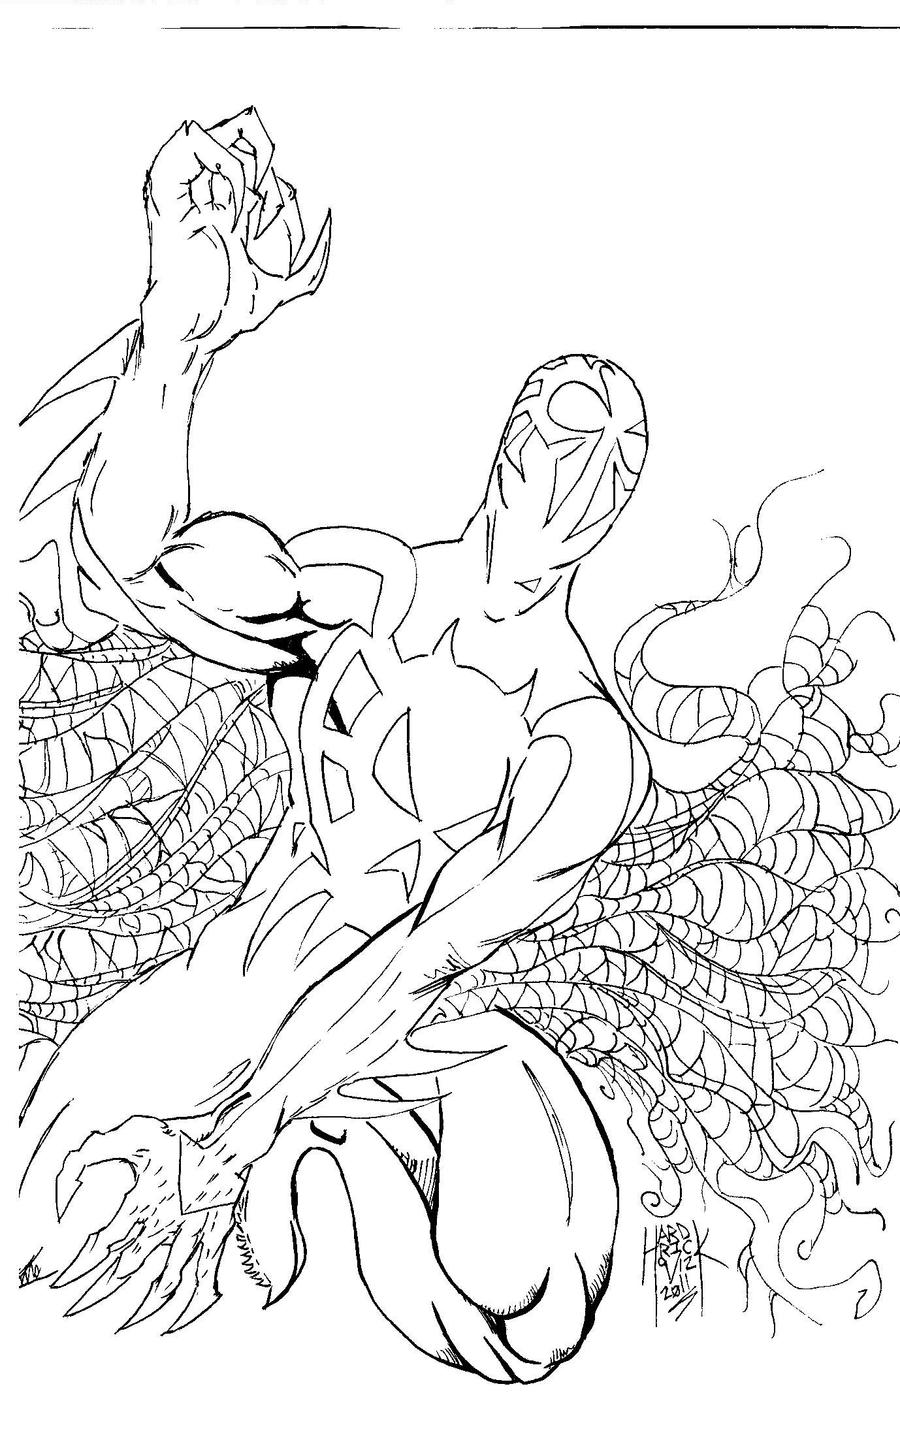 spider man 2099 coloring pages spider man 2099 drawing at getdrawings free download spider coloring man pages 2099